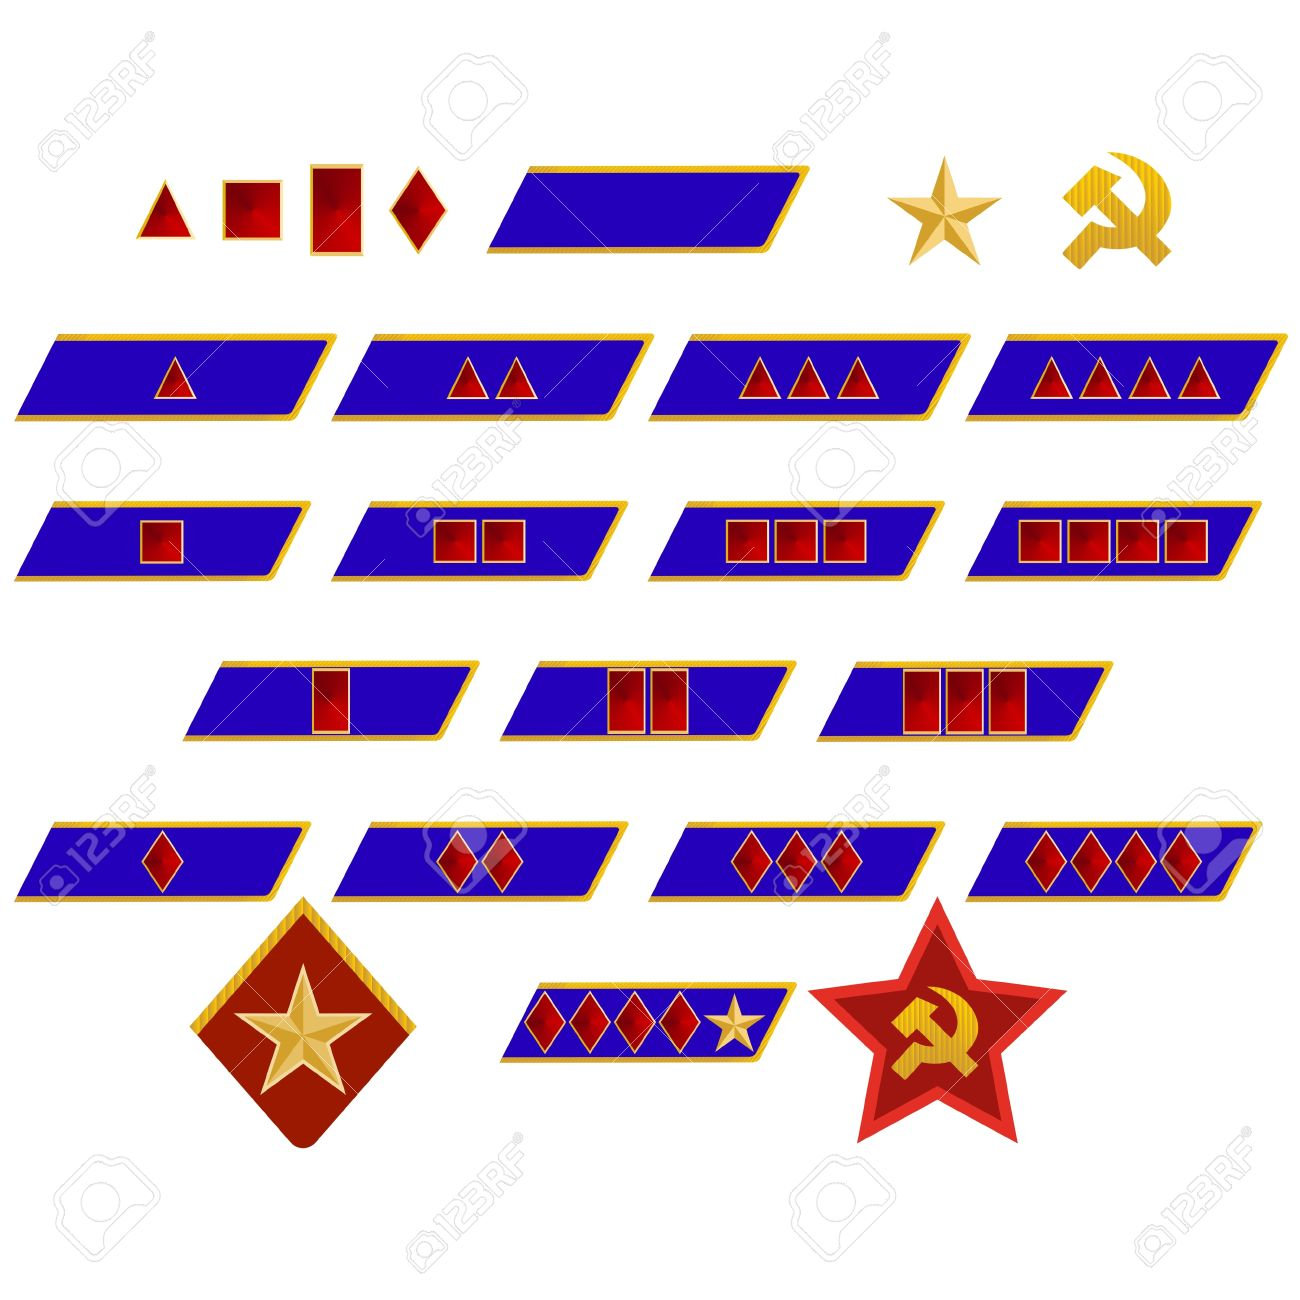 Military Ranks And Insignia Of The World The Illustration On.